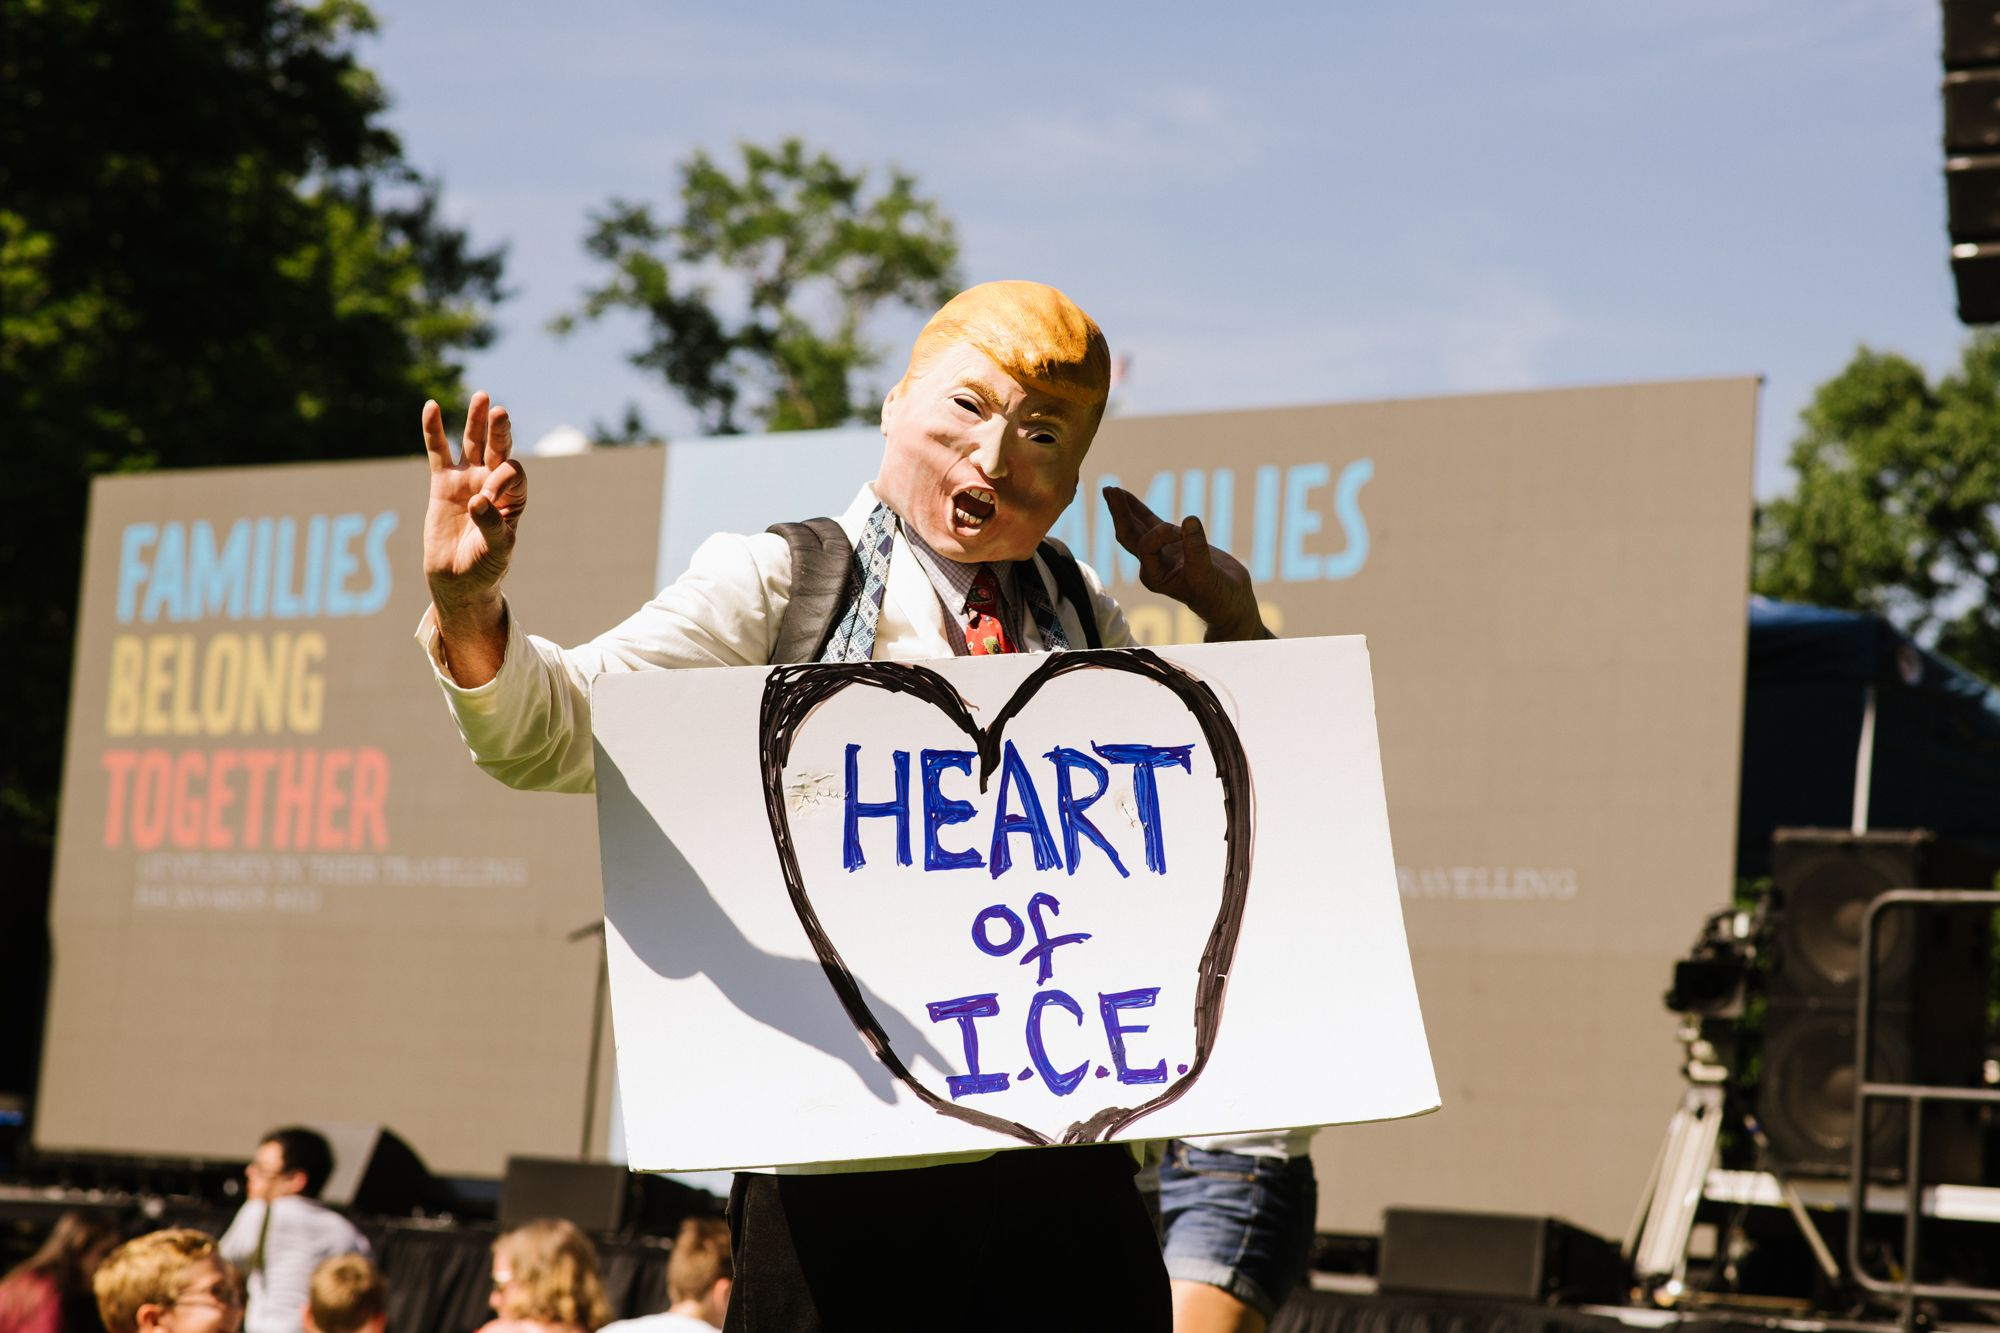 Kate Warren Families Belong Together March Protest Immigration Best Images